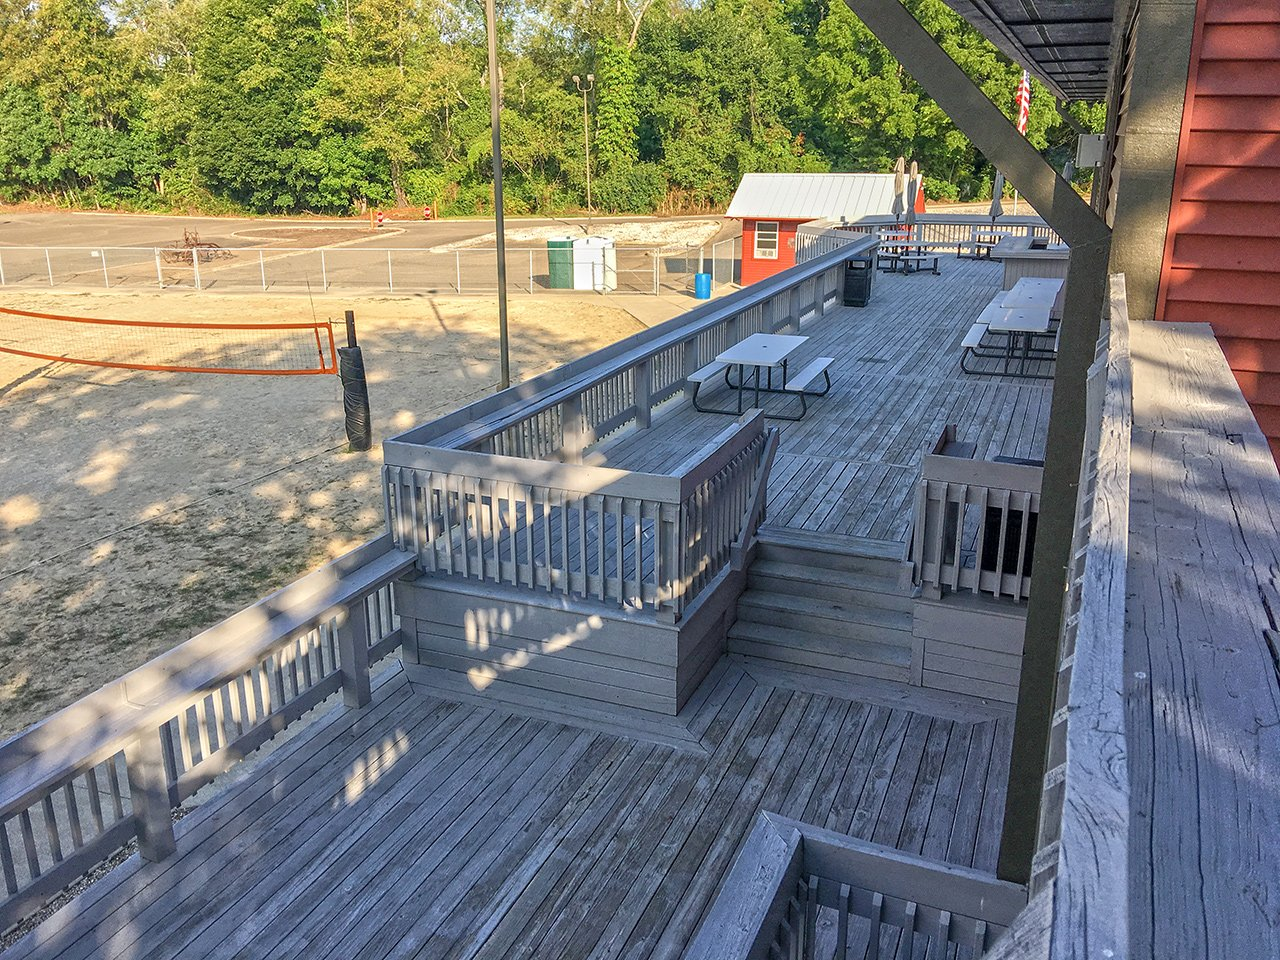 Overview of the deck